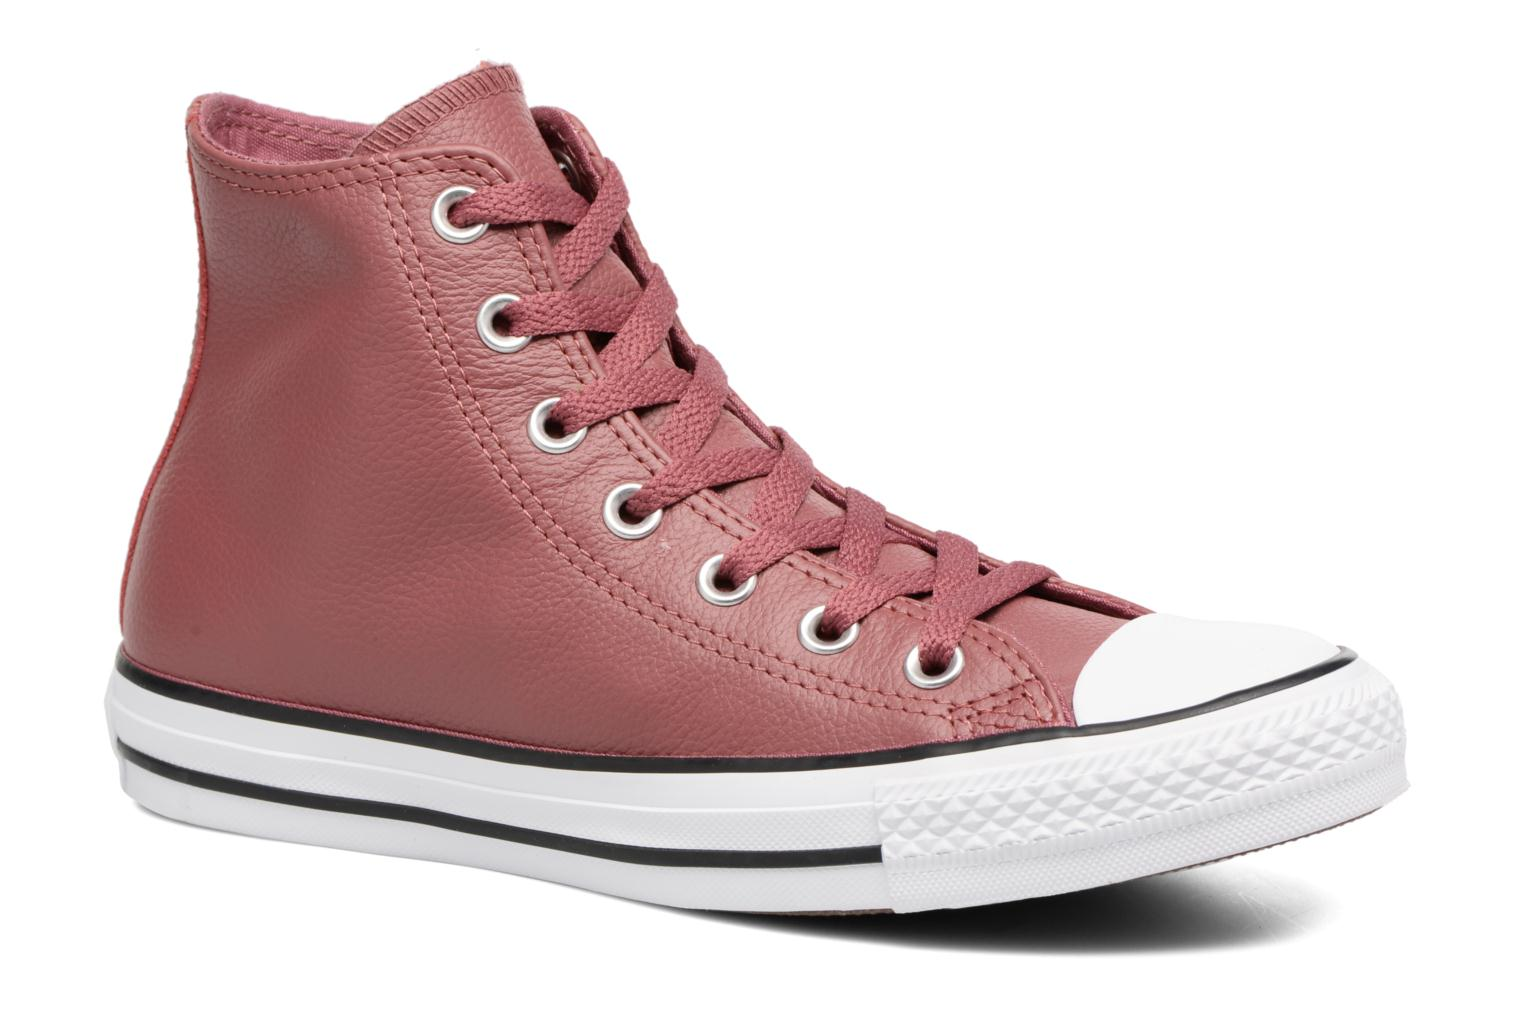 Chuck Taylor All Star Tumbled Leather Hi Port/Black/White